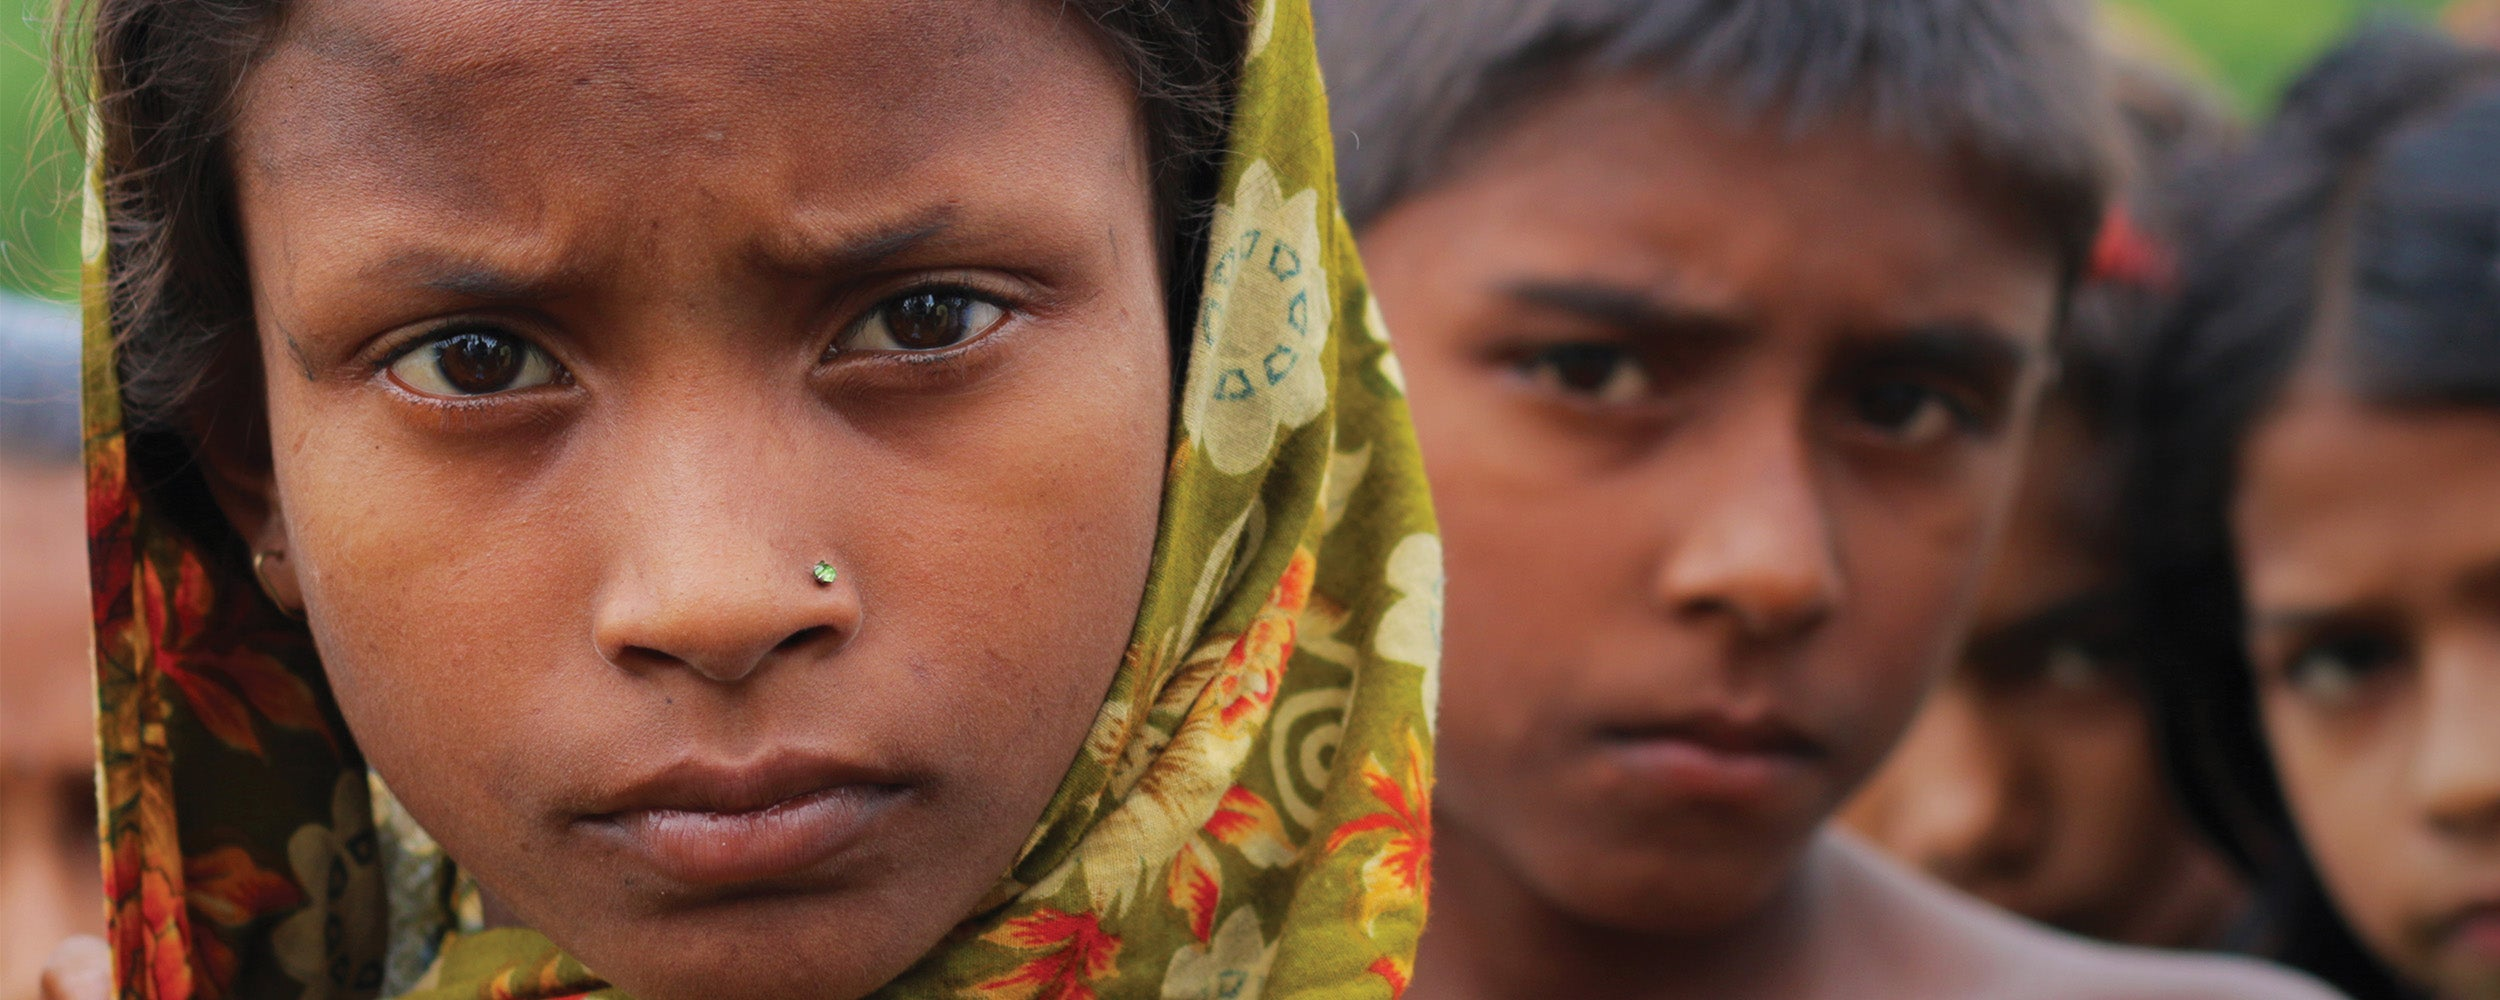 Bangladeshi children on the frontlines of climate change.